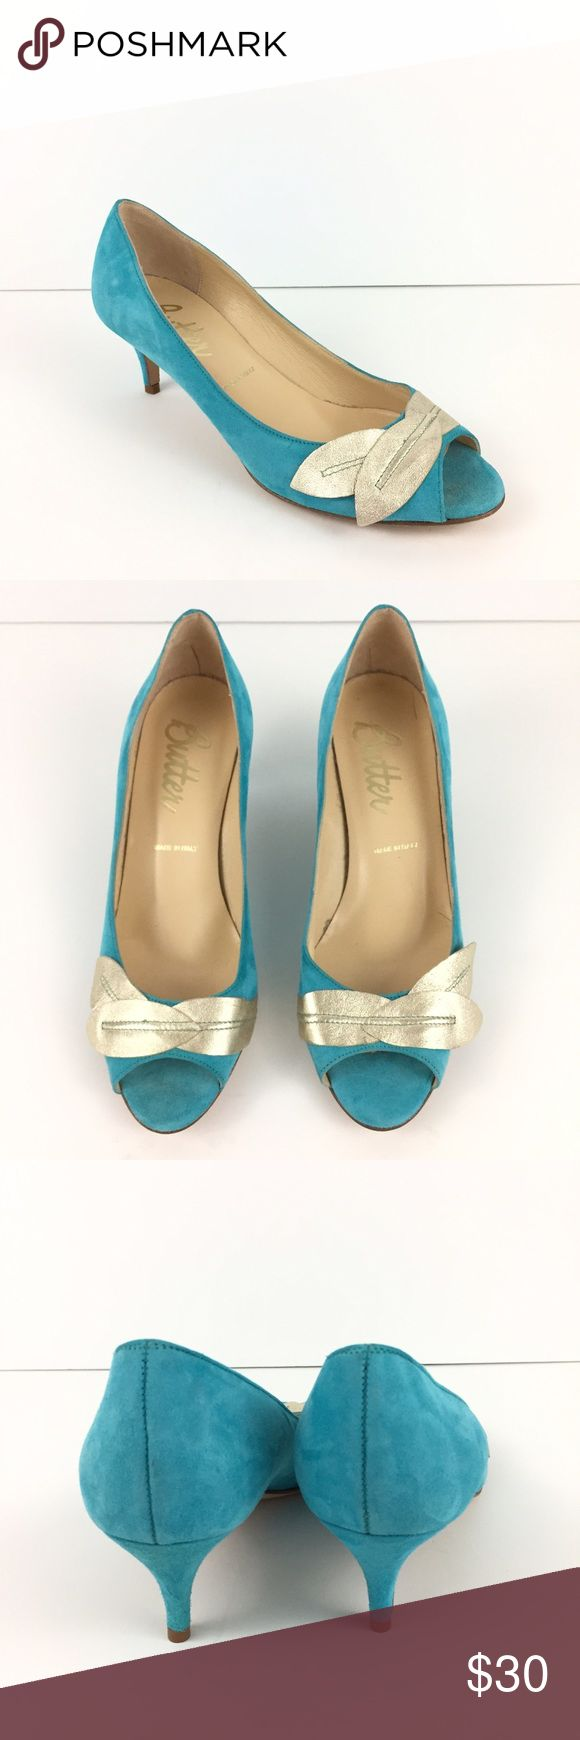 """Butter Teal Blue Gold Leaf Open Toe Heels Italy Made of a teal blue suede leather upper with gold leaf accent. Open toed with 2"""" kitten heels.  New without original tags or box. Butter Shoes Shoes Heels"""